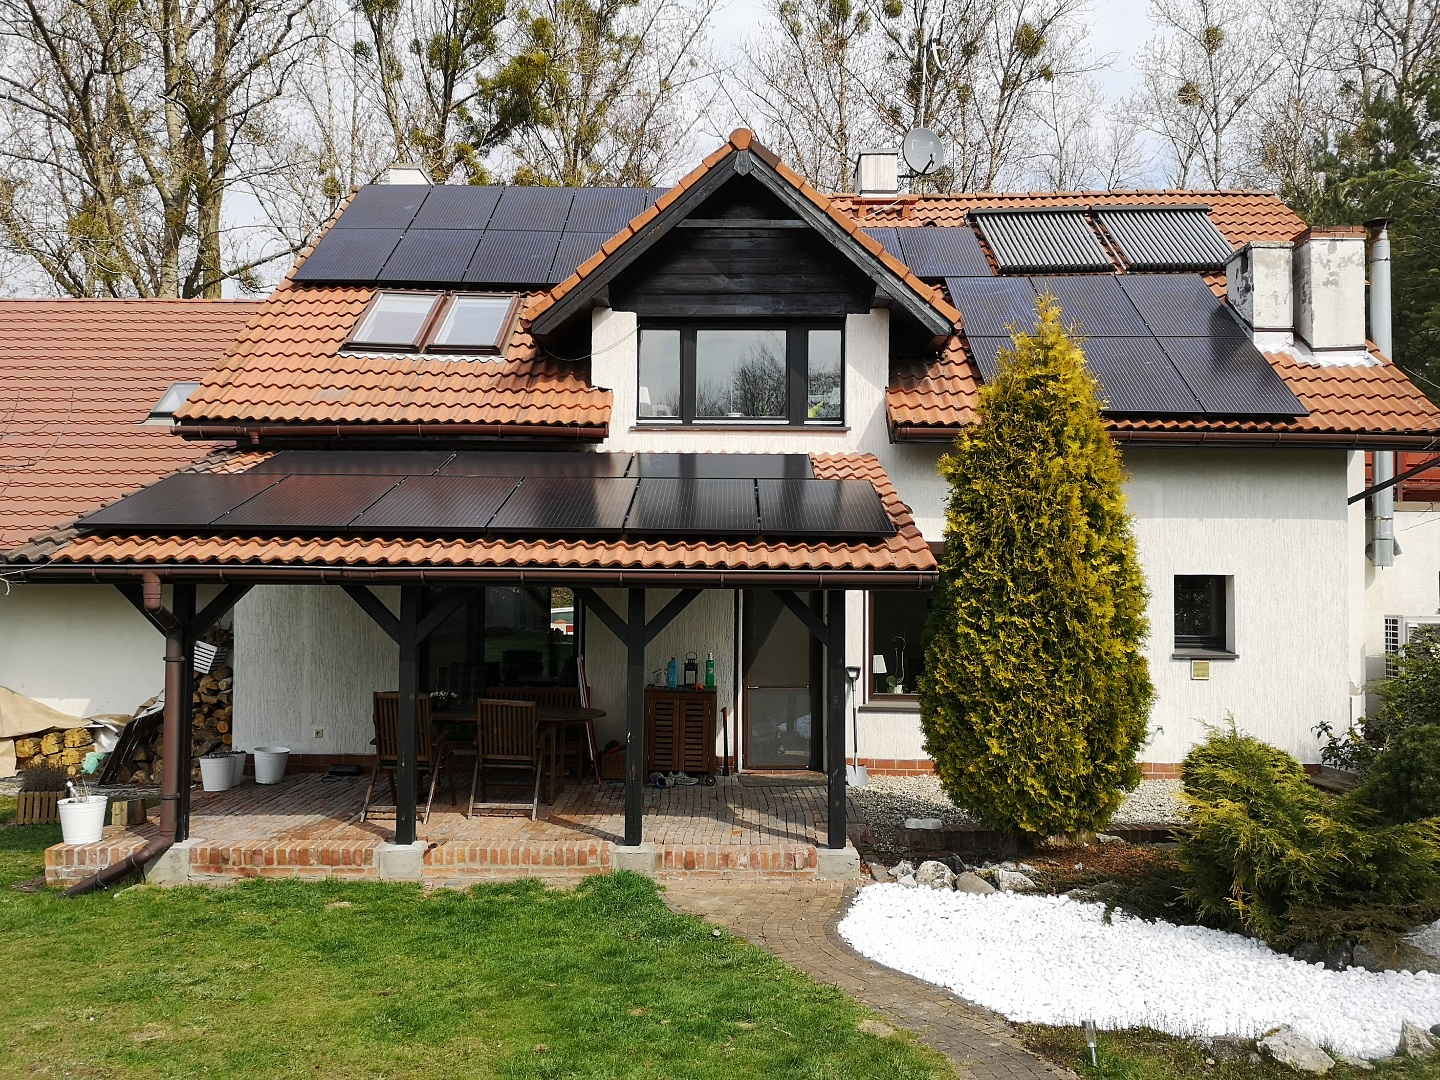 8.2 kWp installation mounted on the south side of a gable roof in Smolnica.